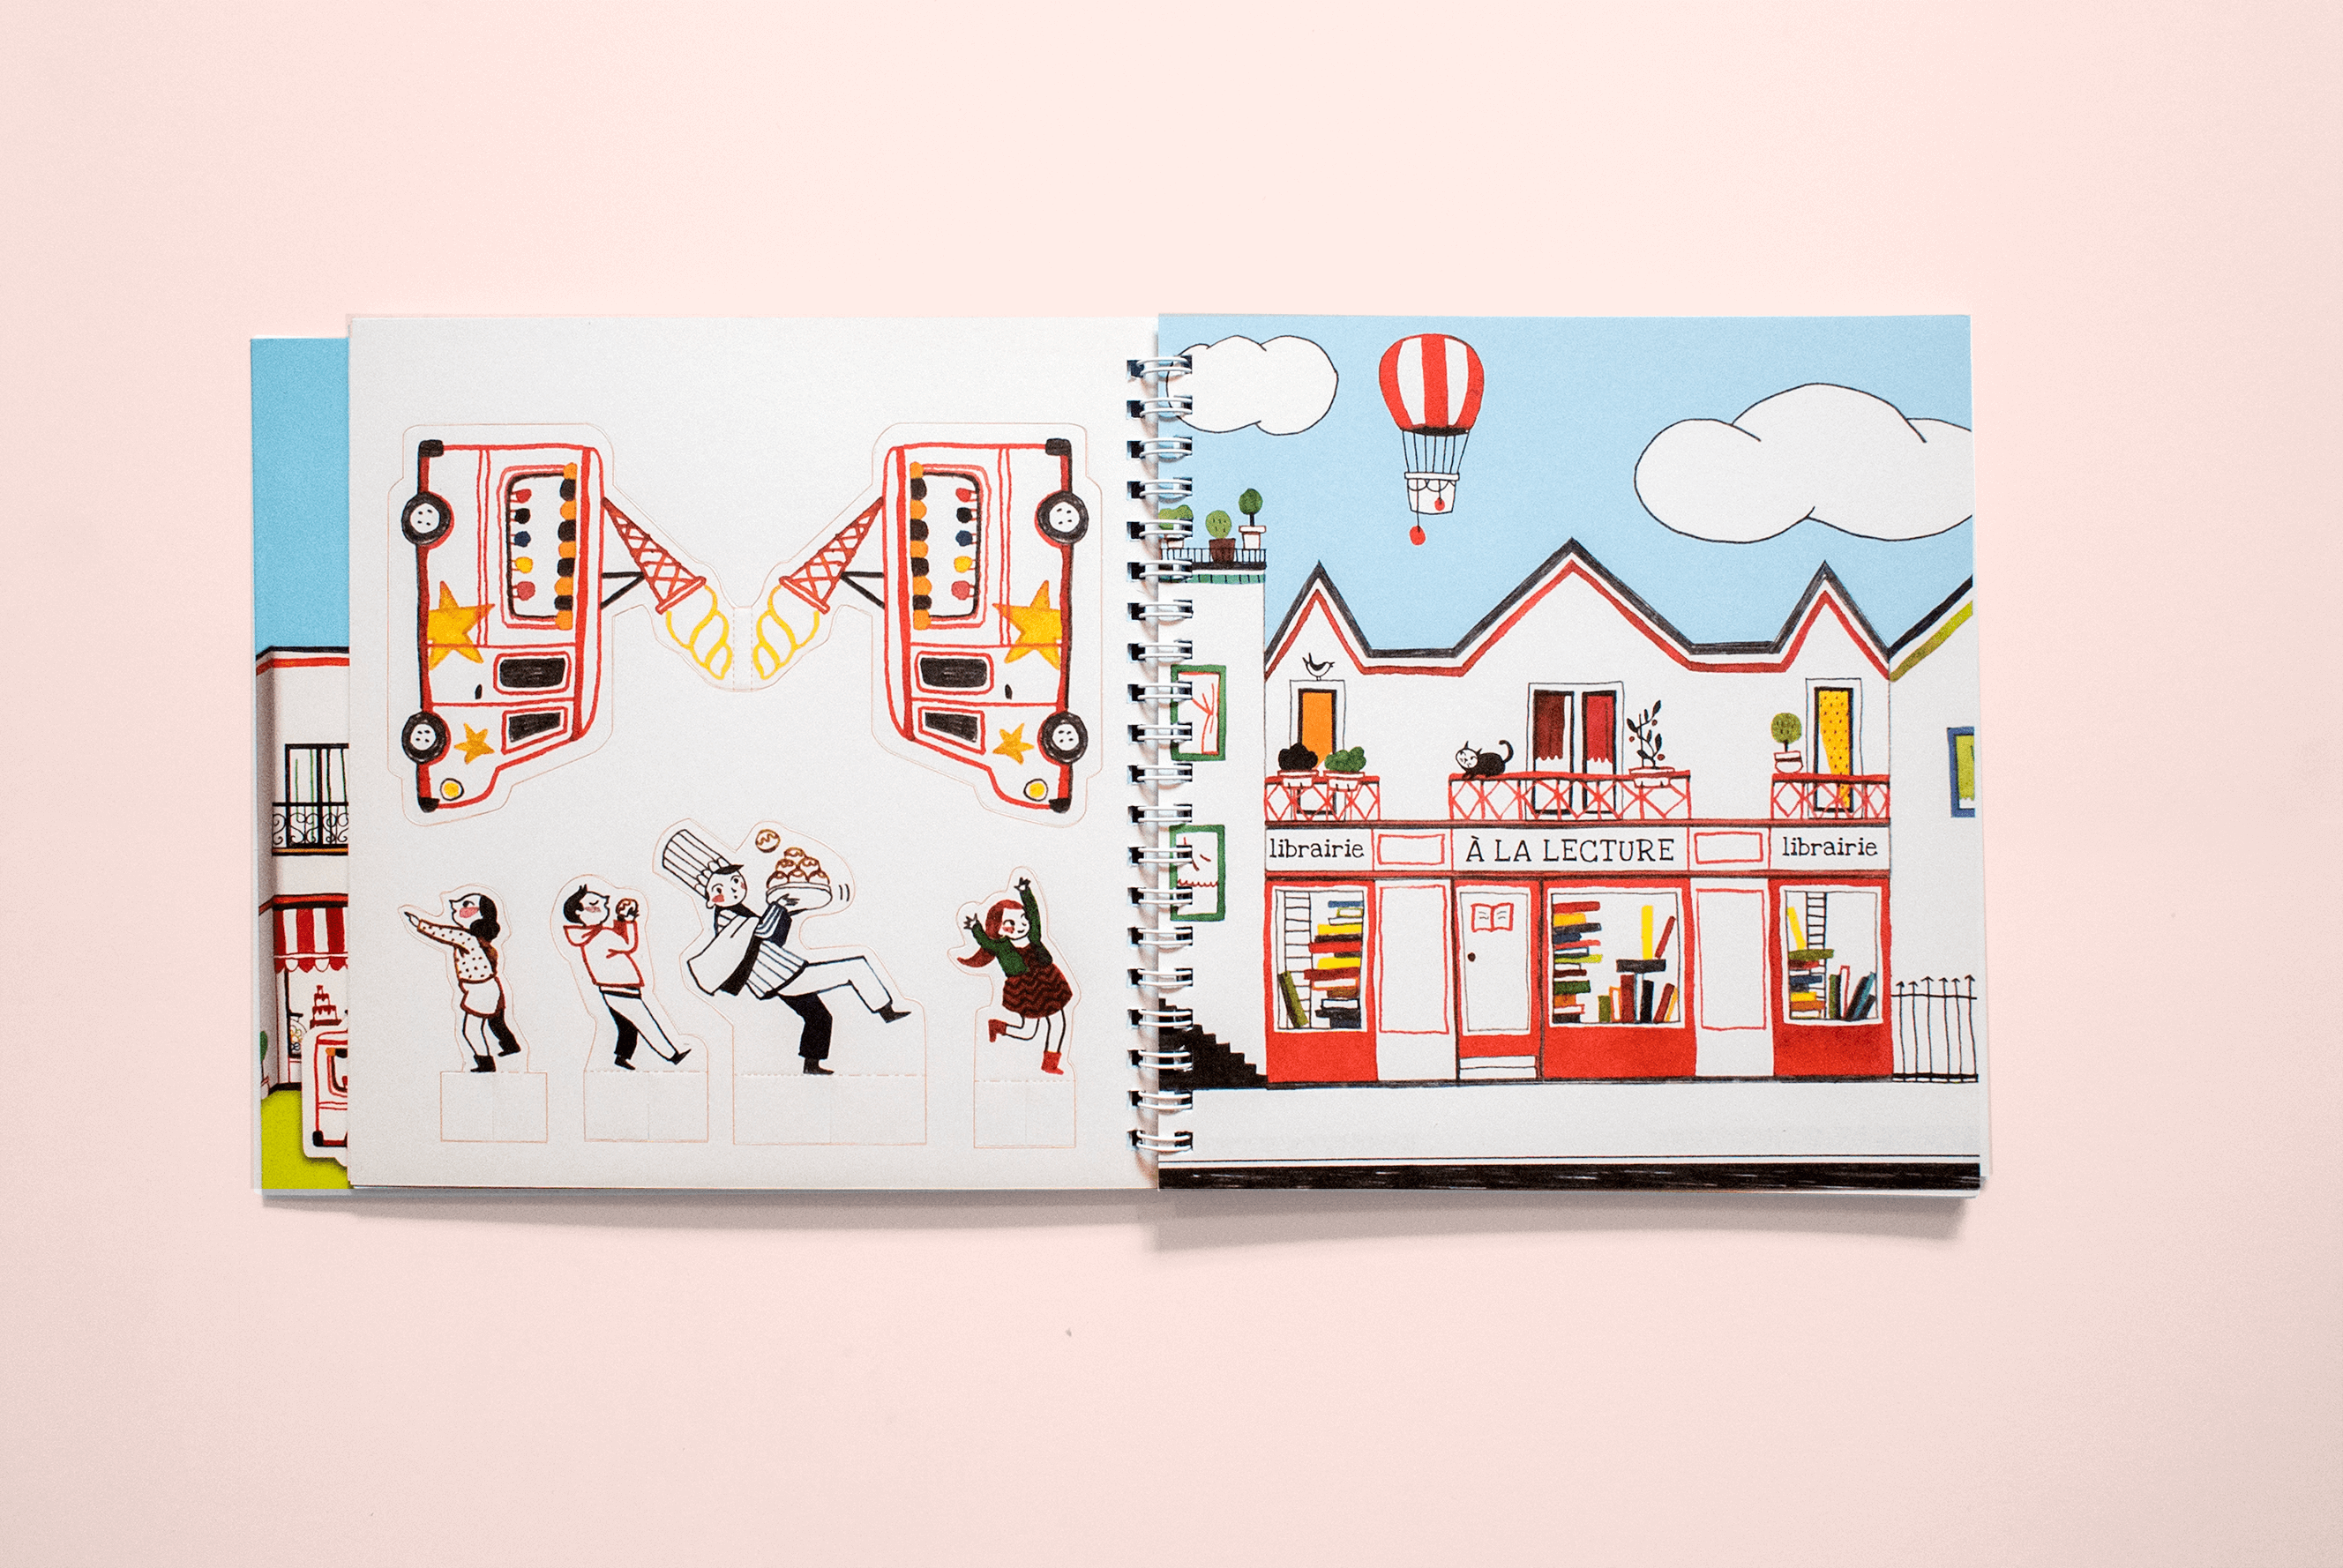 Kids' book open on an illustration of a colourful bookshop